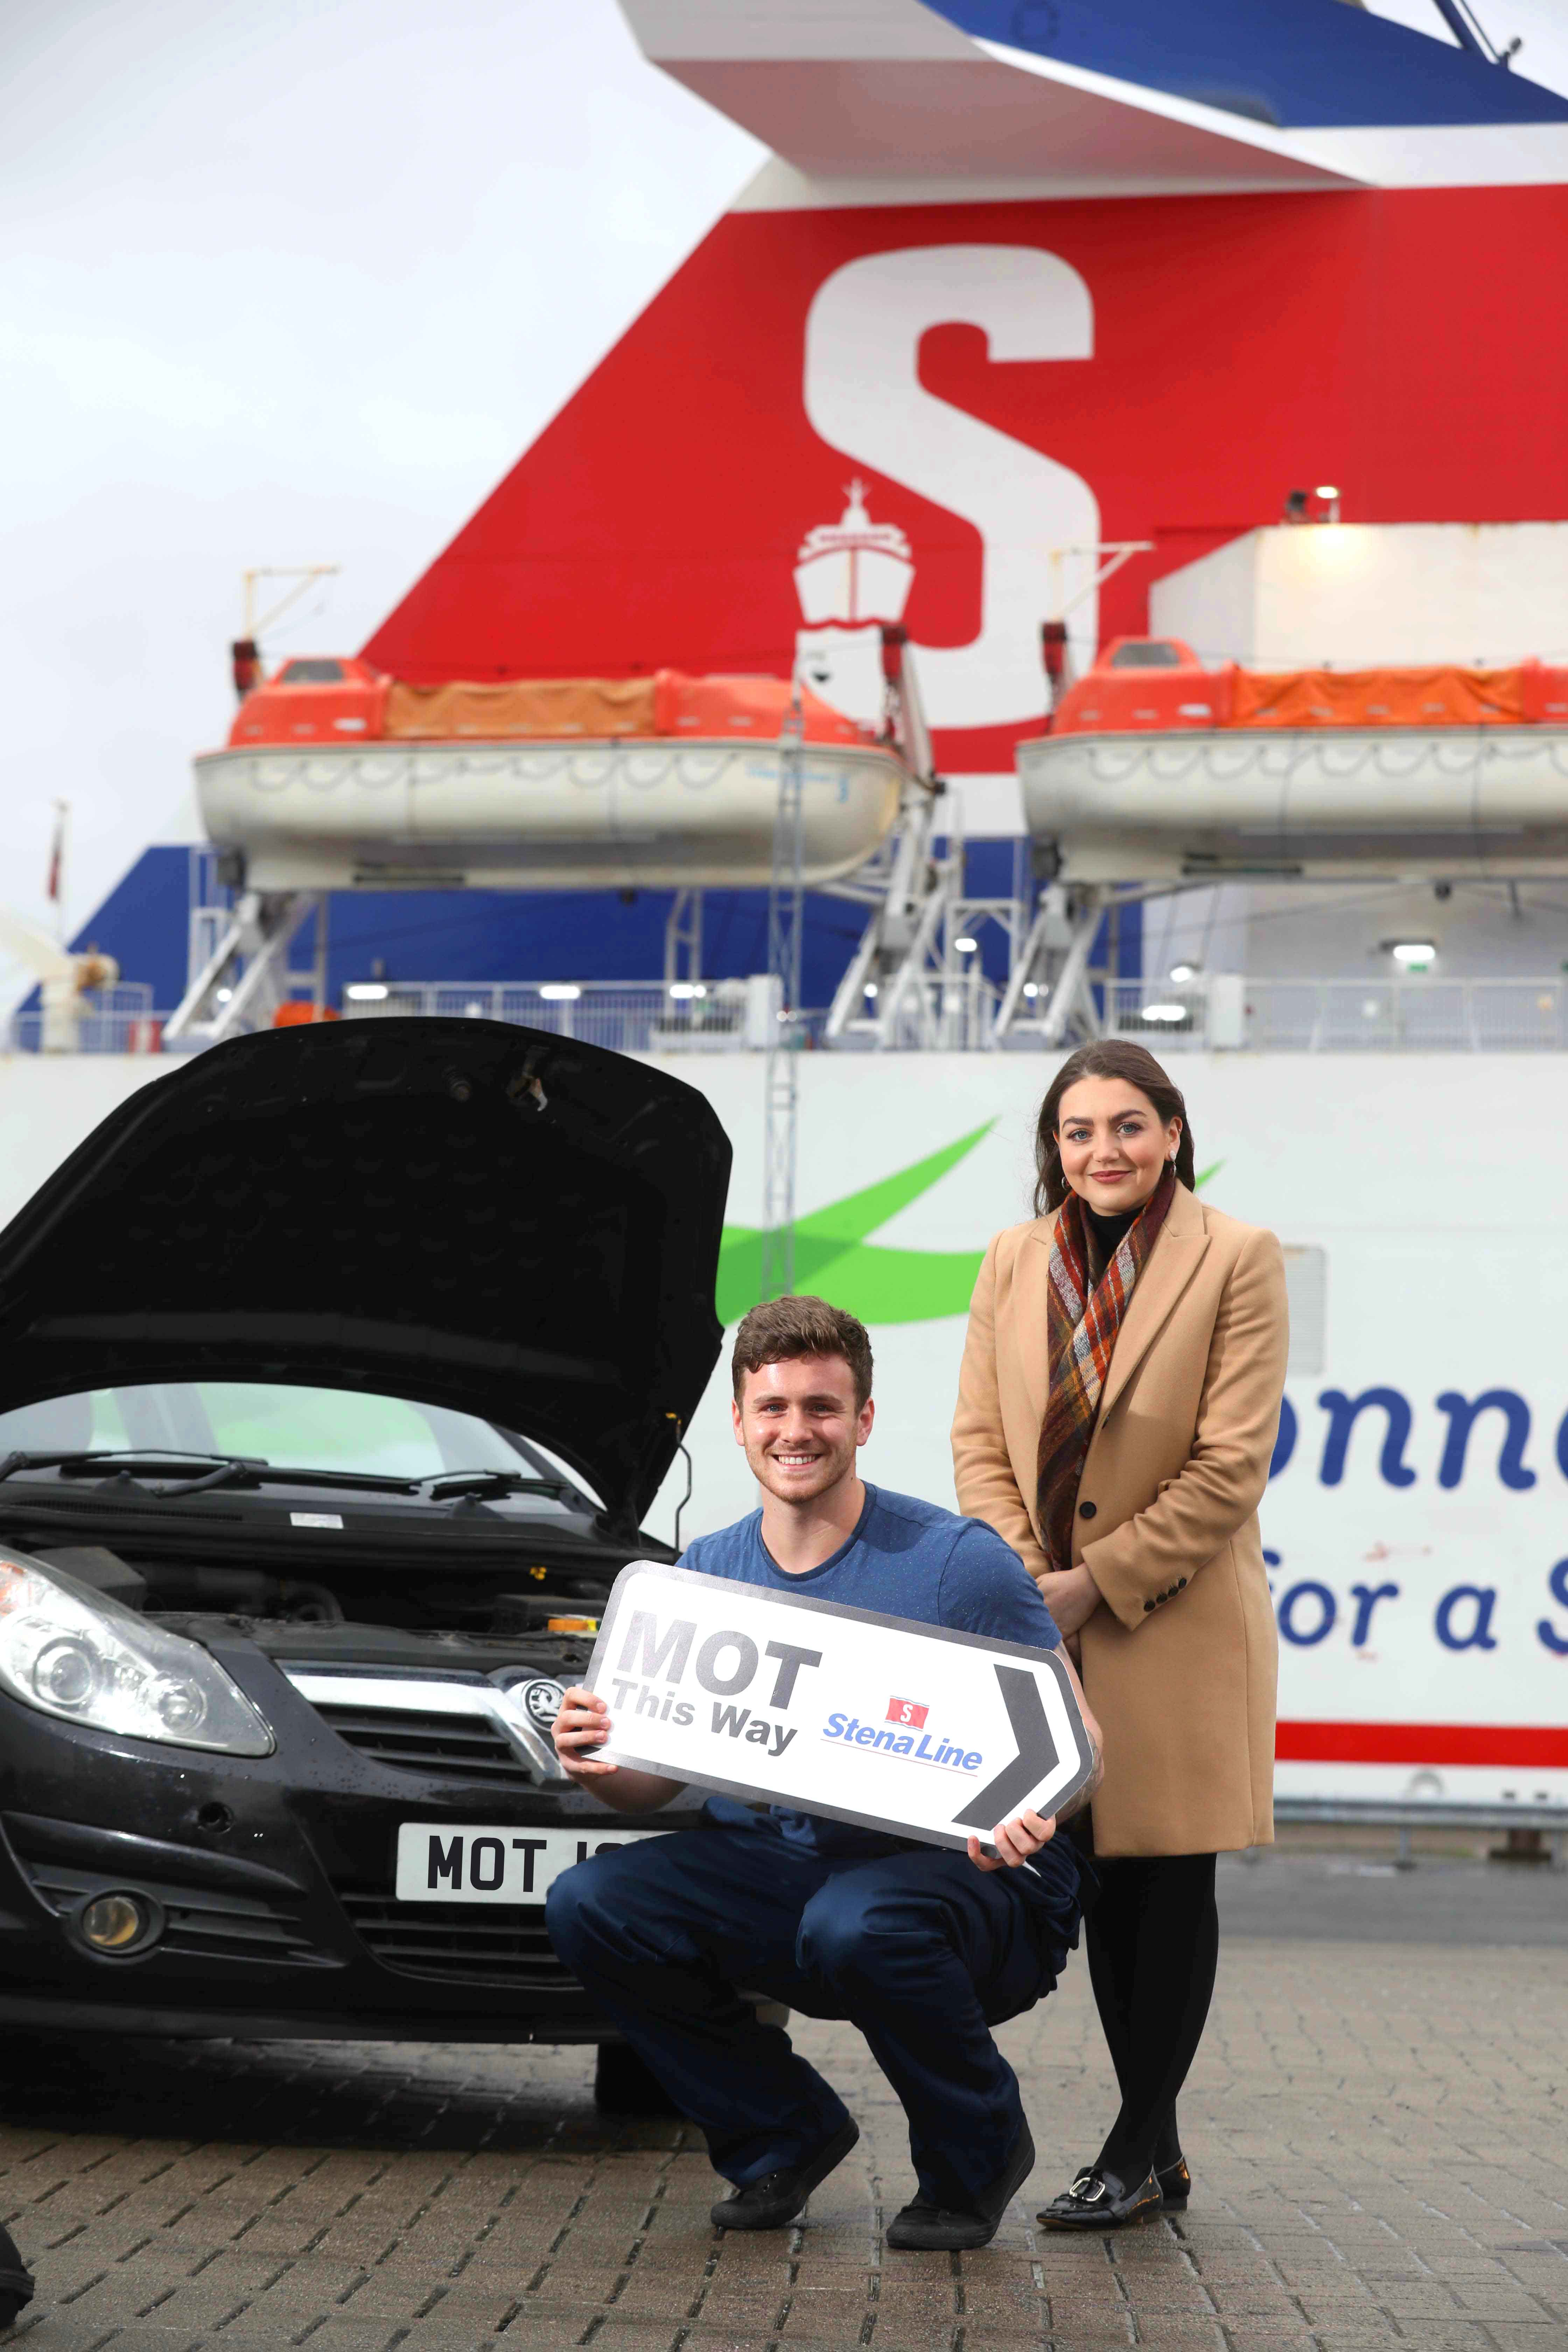 MOTORISTS TAKE TO THE SEA FOR THEIR M.O.T.